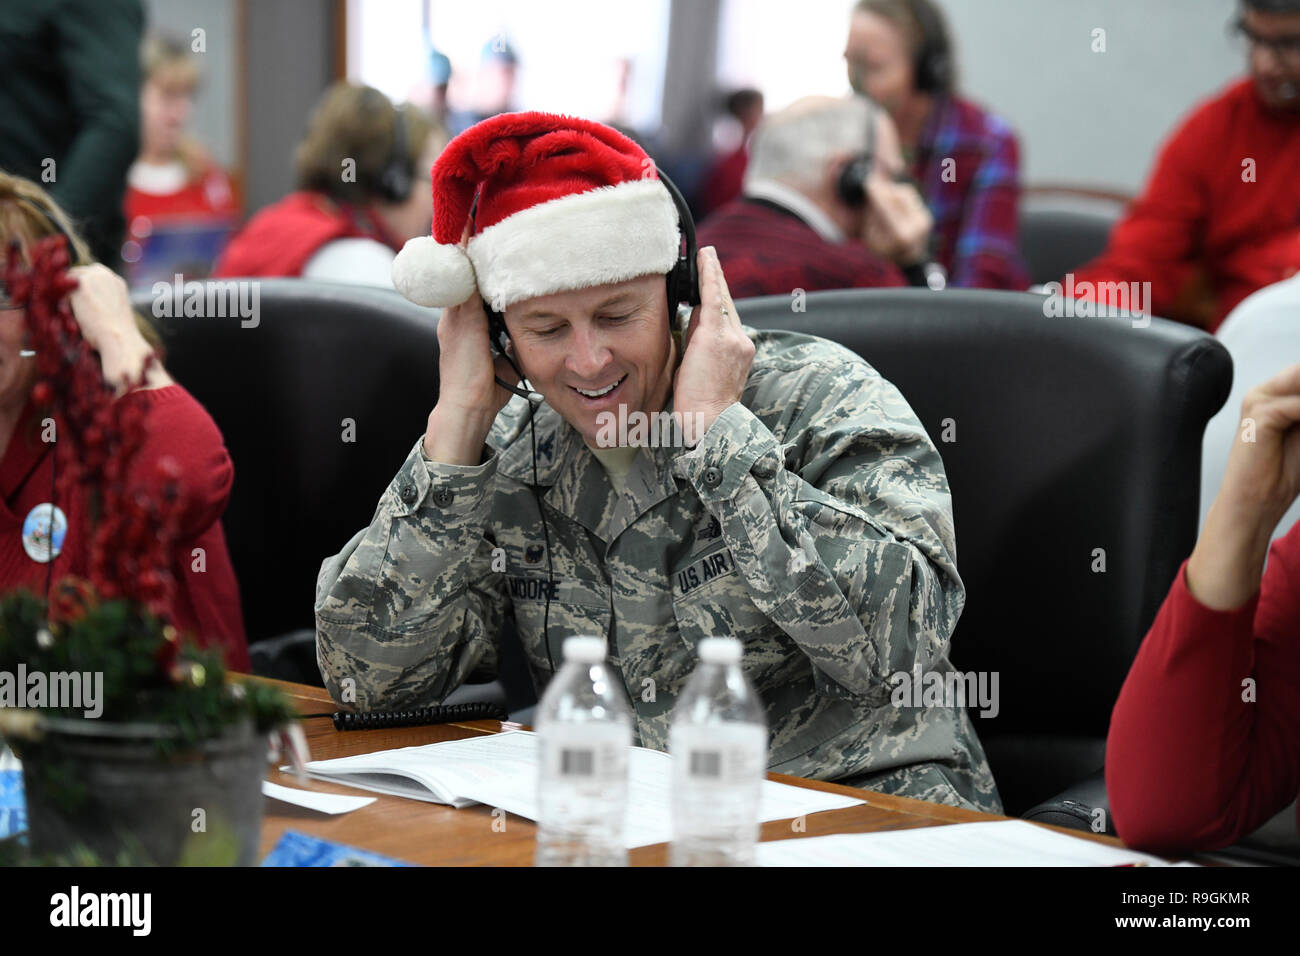 Colorado Springs, Colorado, USA. 24th Dec 2018. USAF Col. Todd Moore, 21st Space Wing commander, answers phones and emails from children around the world during the annual NORAD Tracks Santa event at Peterson Air Force Base December 24, 2018 in Colorado Springs, Colorado. Last year NTS had more than 1,600 volunteers answering 125,000 phone calls, 2,000 emails and 7,450 on-star requests from children around the world asking where Santa is at and when will he arrive at their house. Credit: Planetpix/Alamy Live News - Stock Image